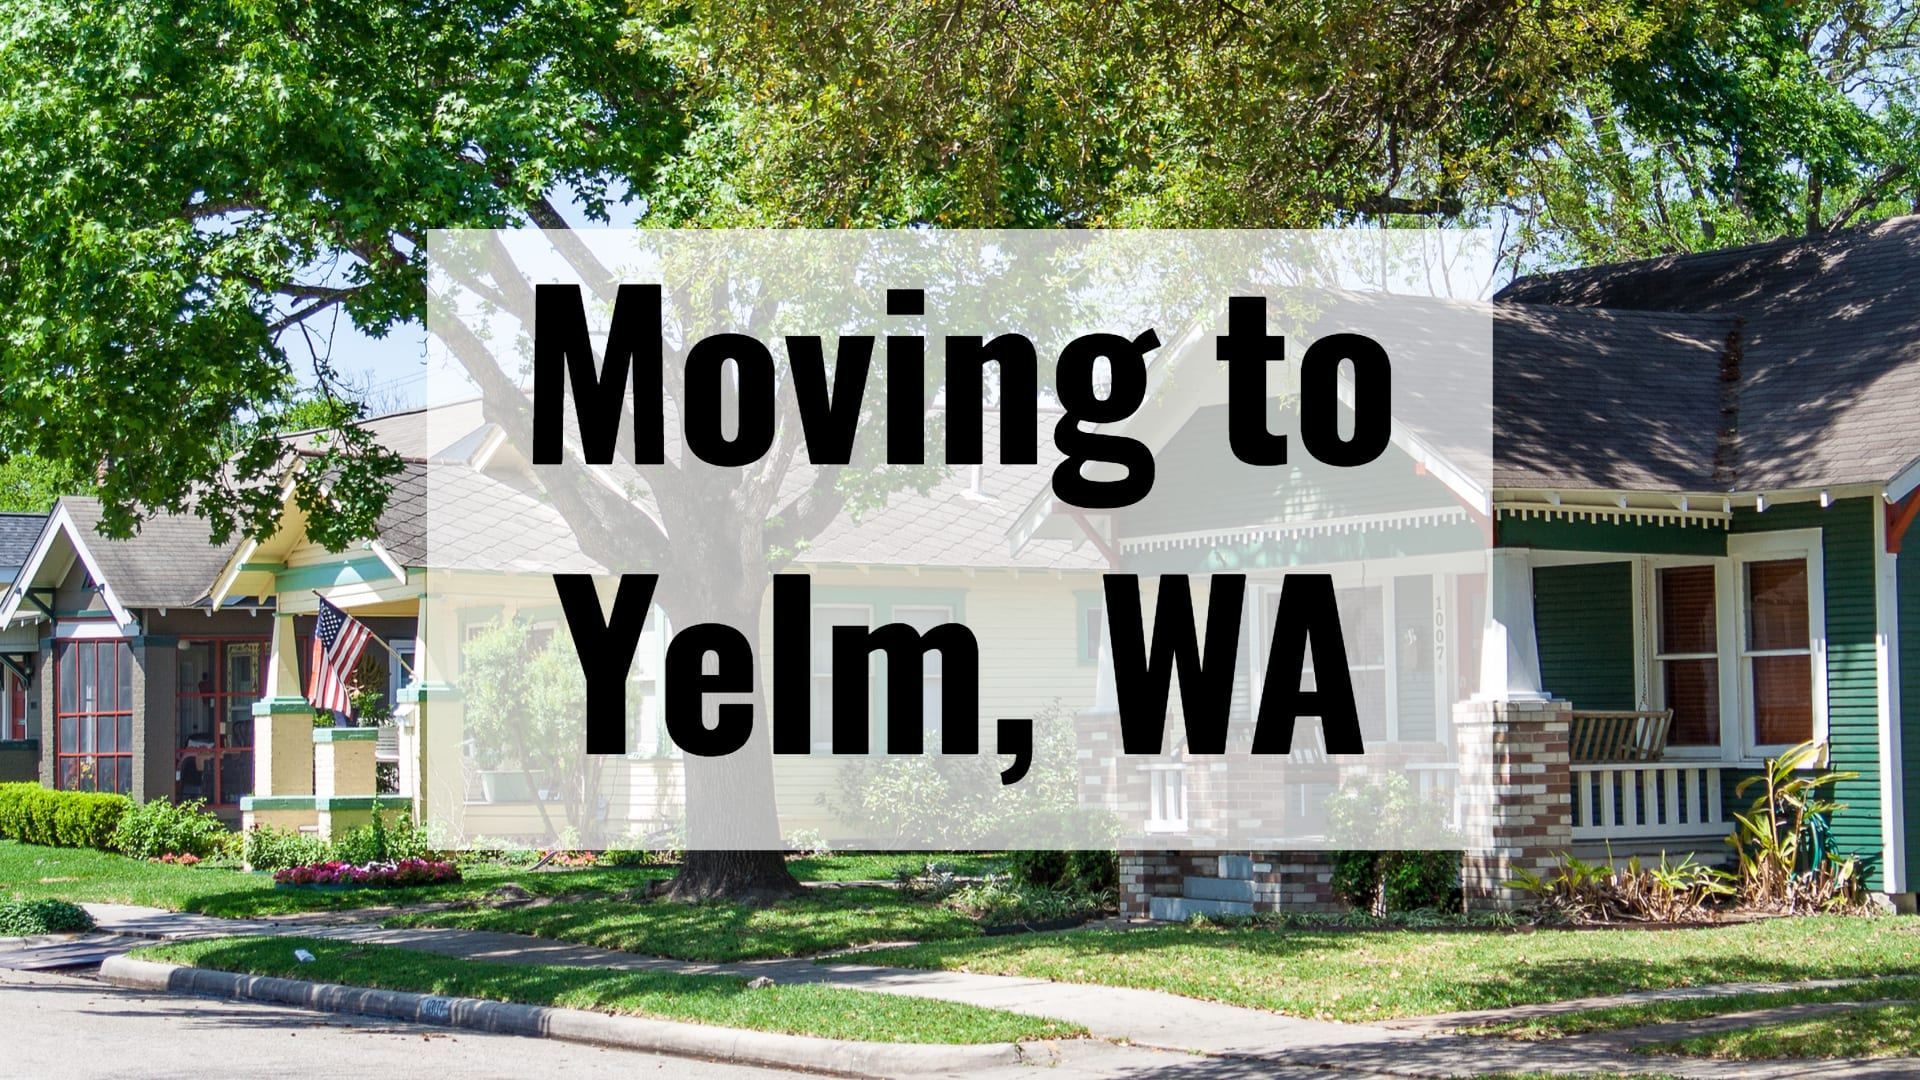 Yelm Wa The 2019 Ultimate Living In Amp Moving To Guide